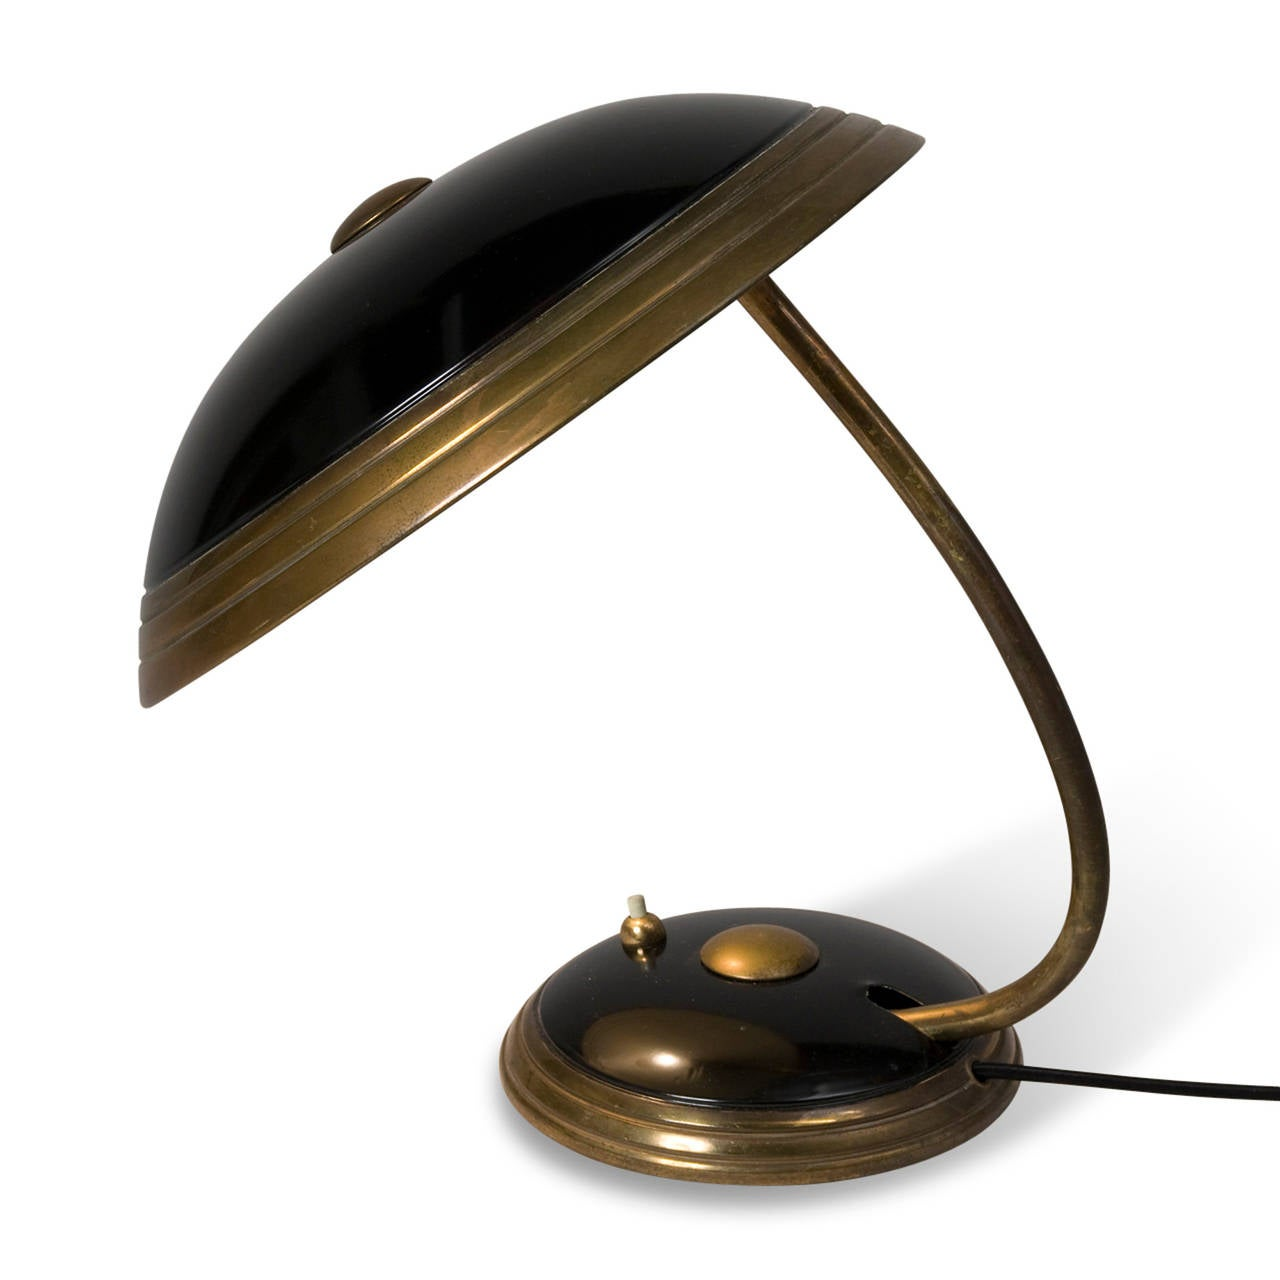 Black Dome Pivoting Desk Lamp By Helo At 1stdibs